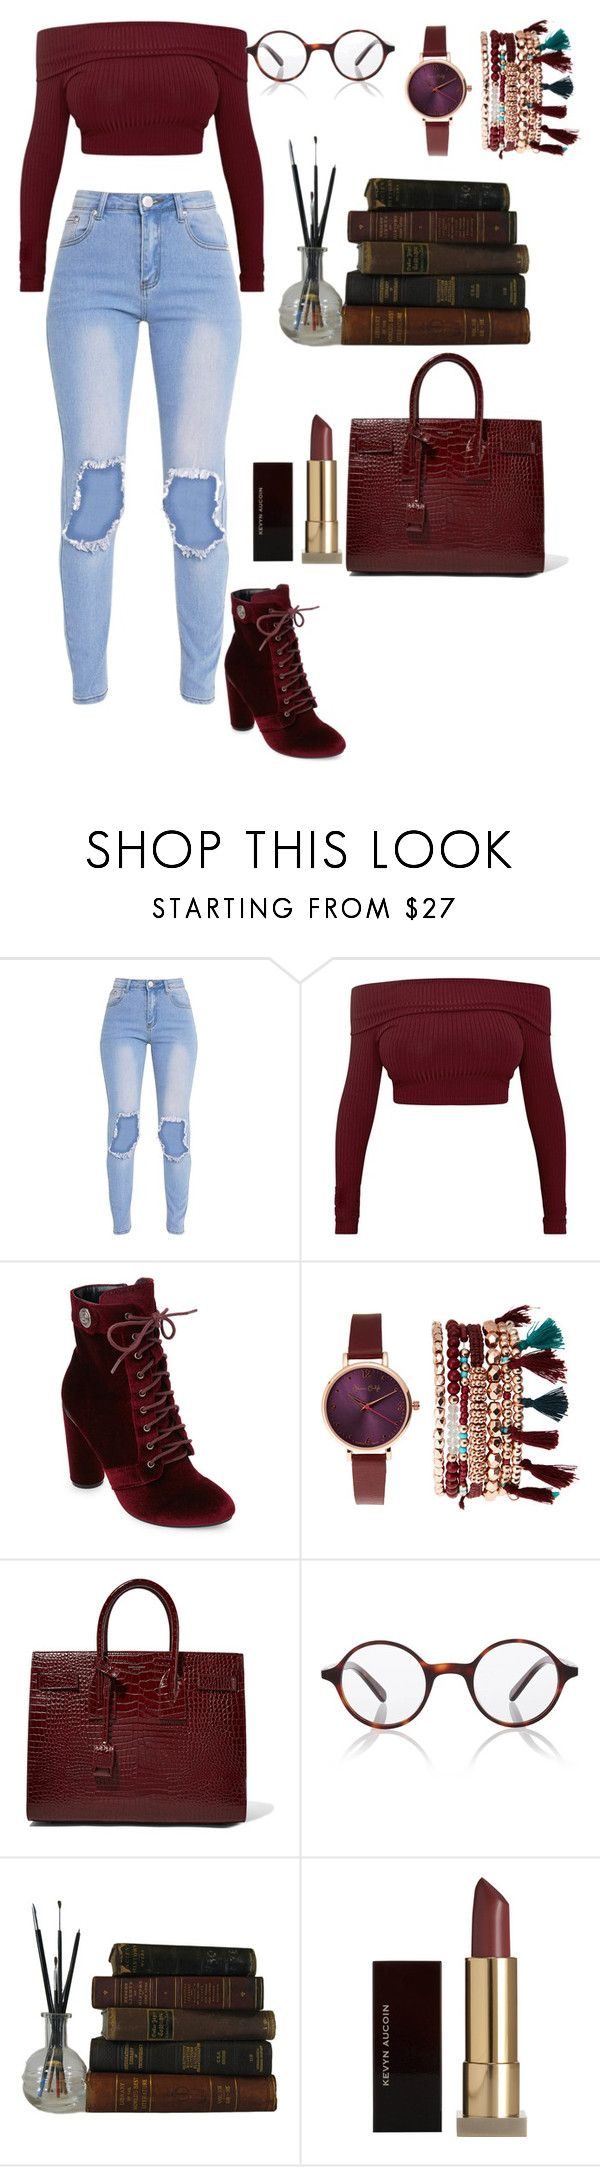 """""""burgundy 💕"""" by tessa-cassie ❤ liked on Polyvore featuring Catherine Catherine Malandrino, Jessica Carlyle, Yves Saint Laurent, Finlay & Co. and Kevyn Aucoin"""